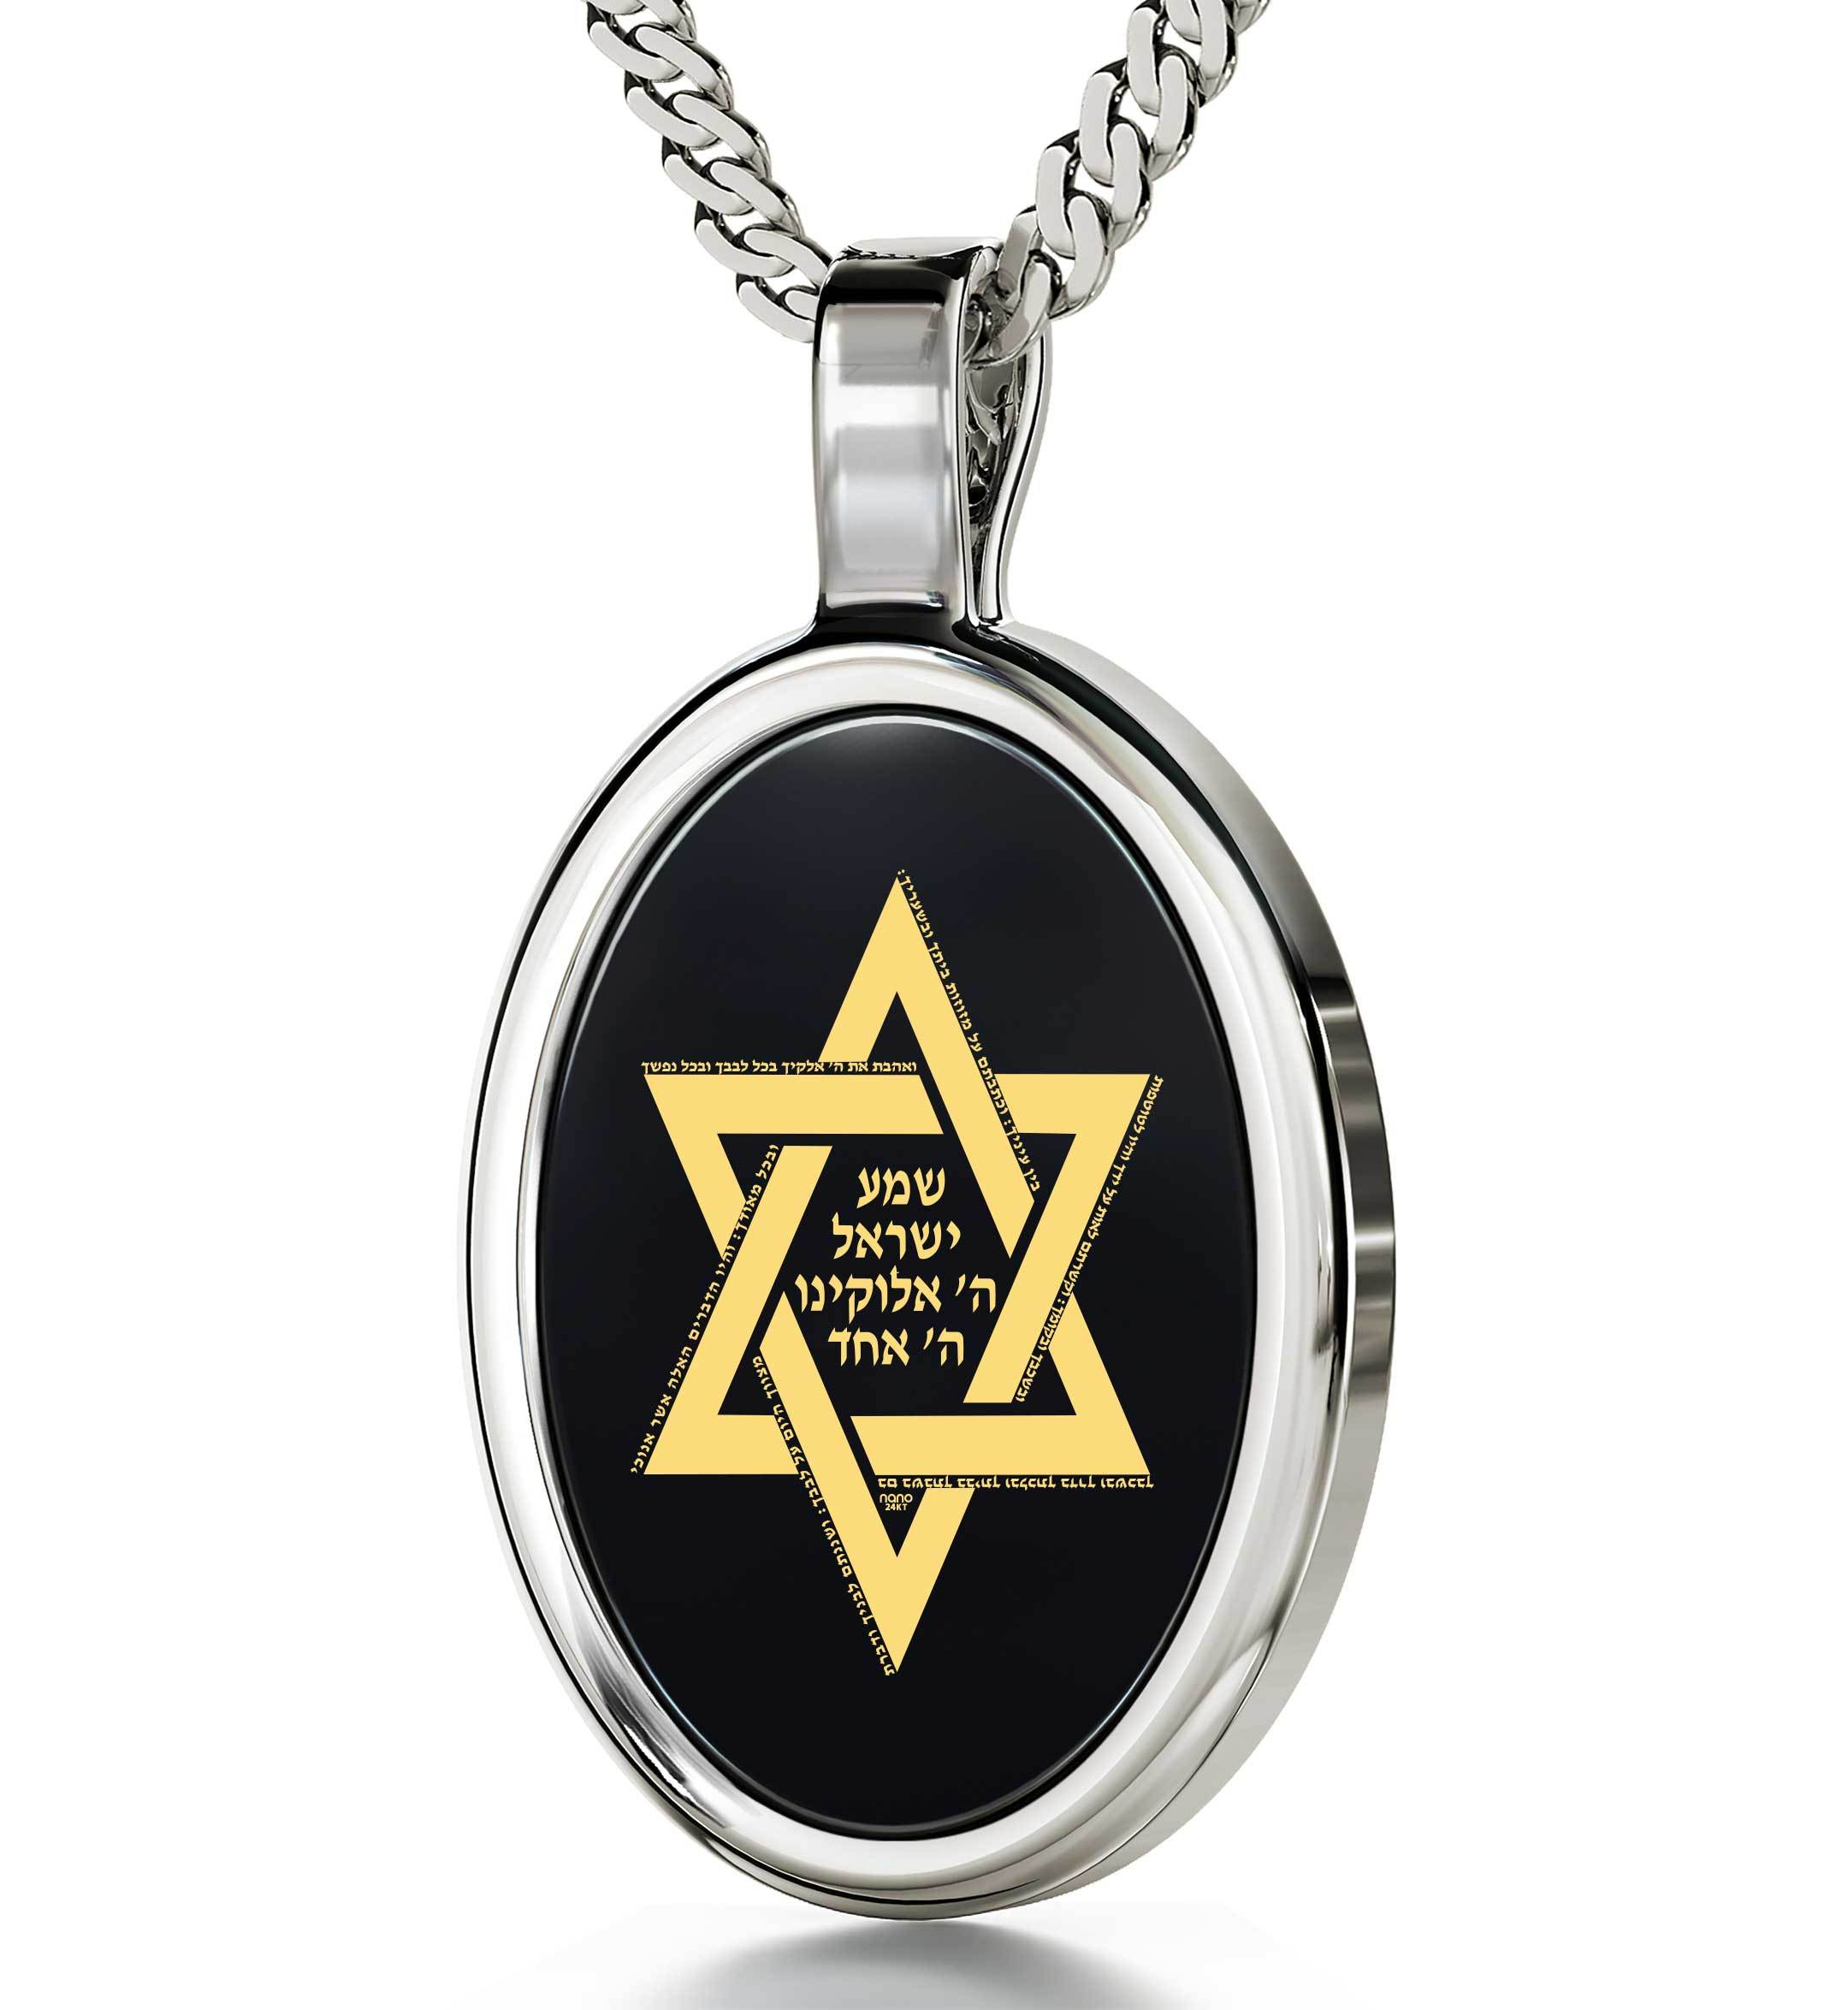 """Shema Yisrael"" Engraved in 24k, Jewish Necklace, Bar Mitzvah Gift, Star of David Charm, Nano Jewelry"